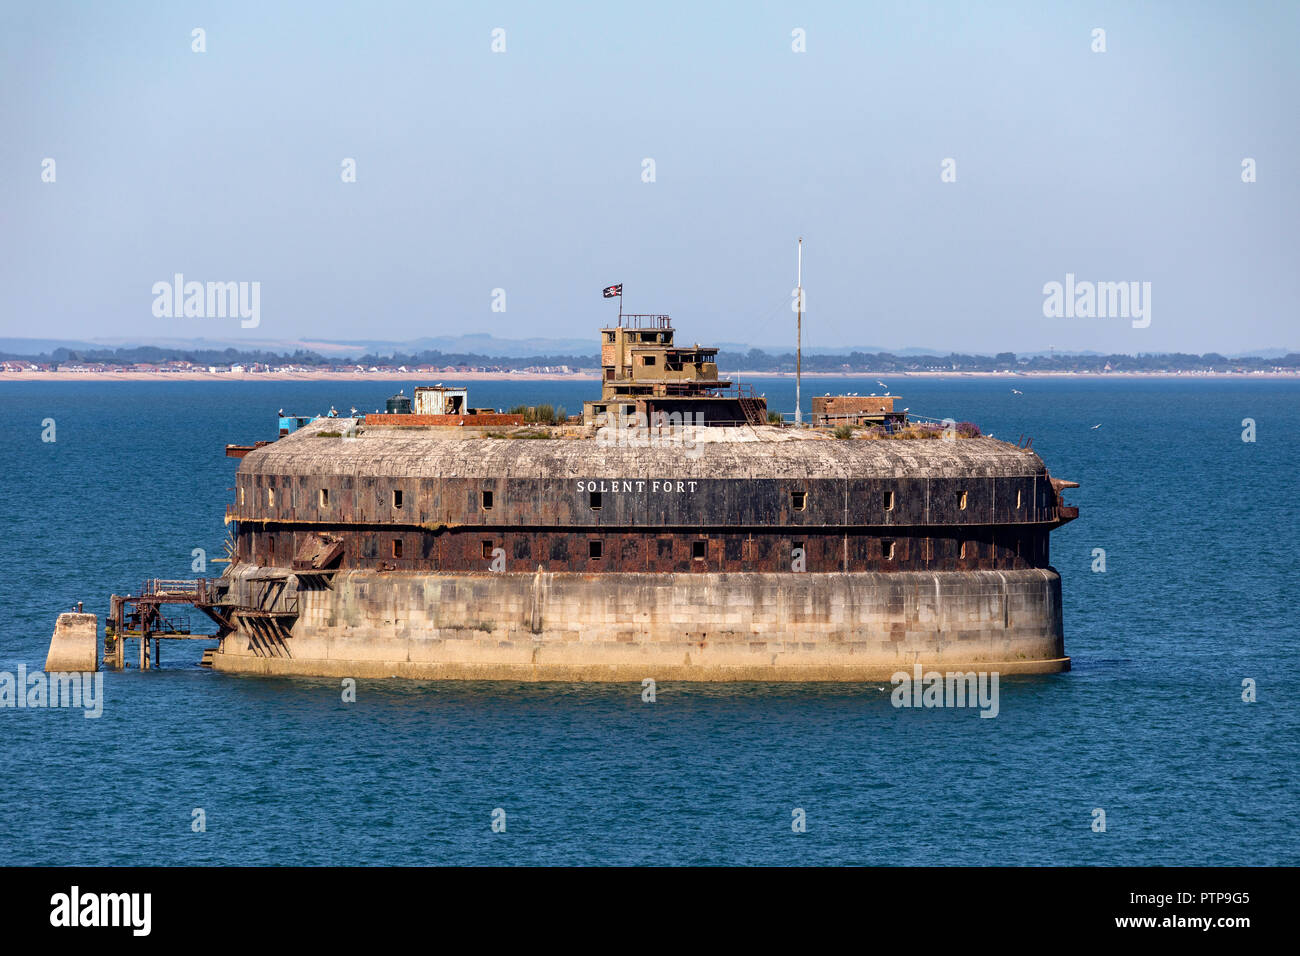 One of the Palmerston Forts in the Solent that encircle Portsmouth, England. Built in 1859 by Royal Commission against the threat of a French invasion - Stock Image